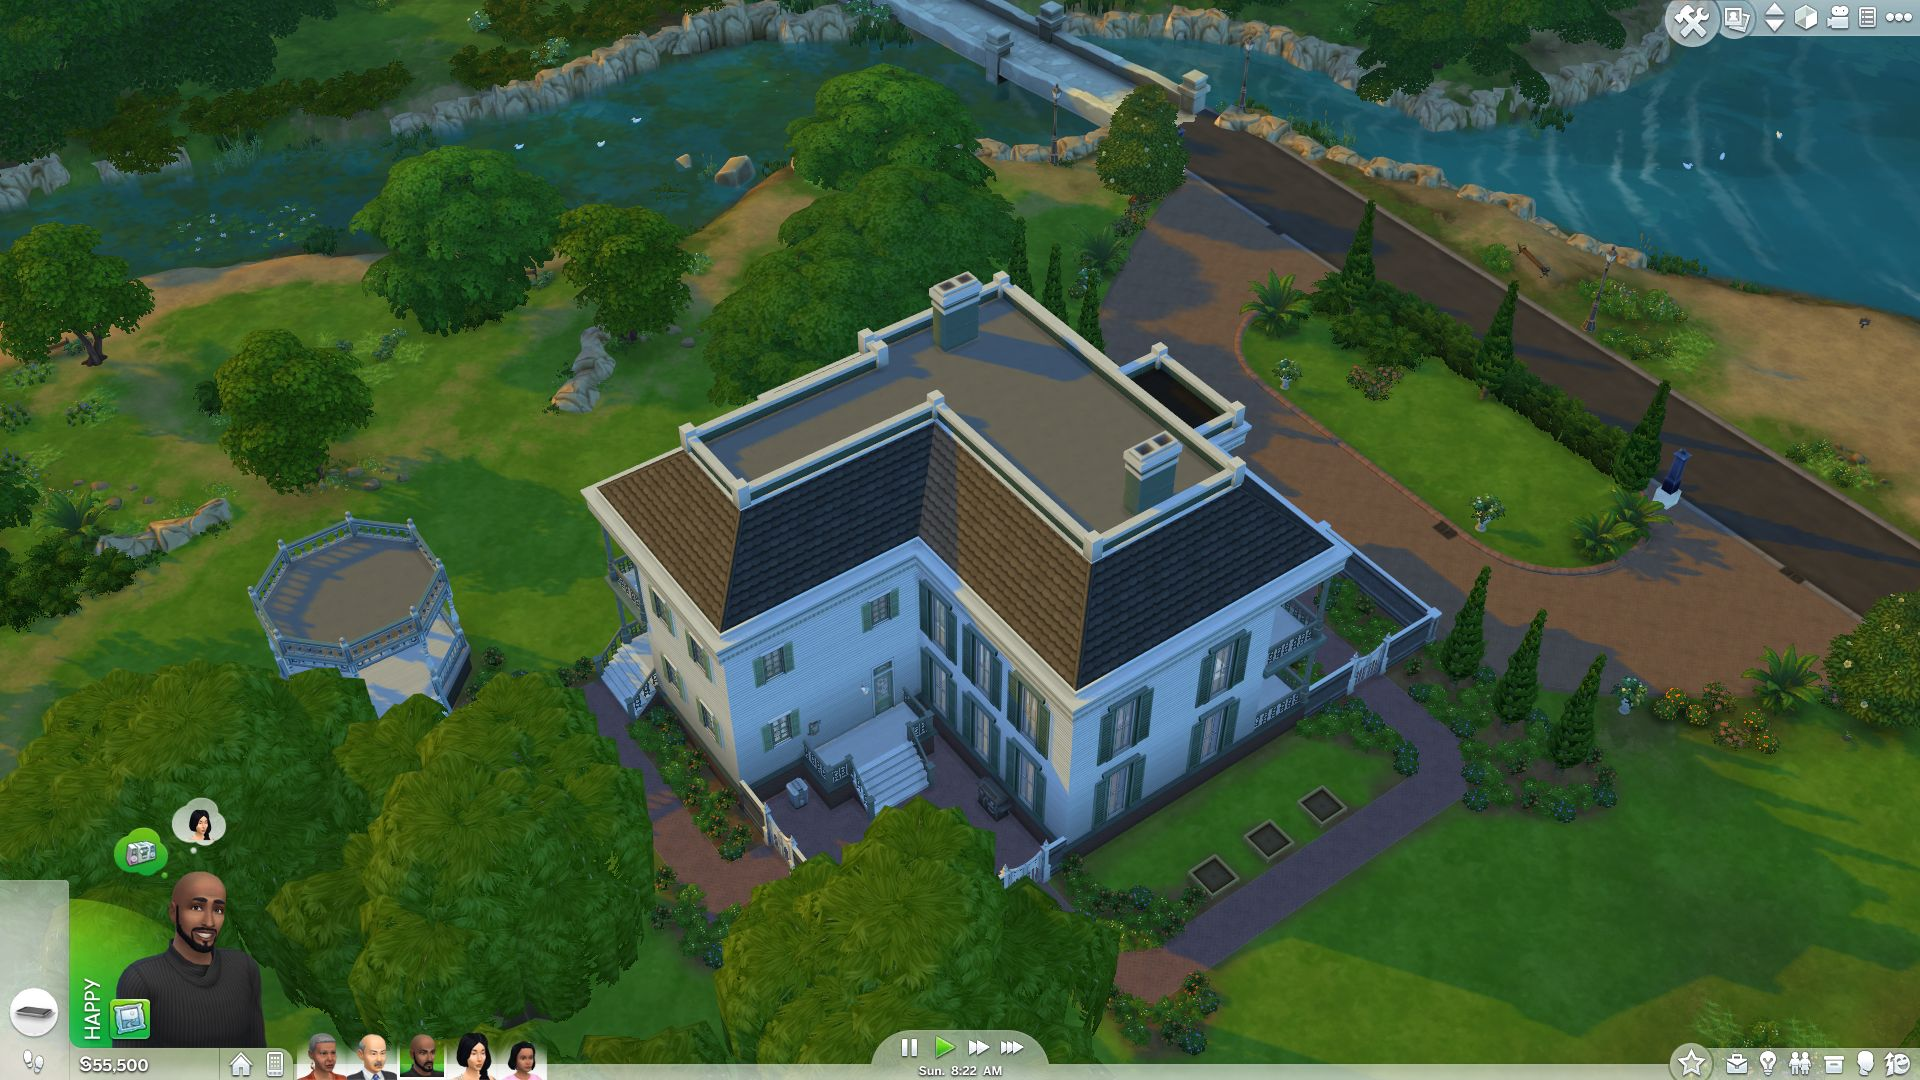 Sims 4 Benchmarked NotebookChecknet Reviews